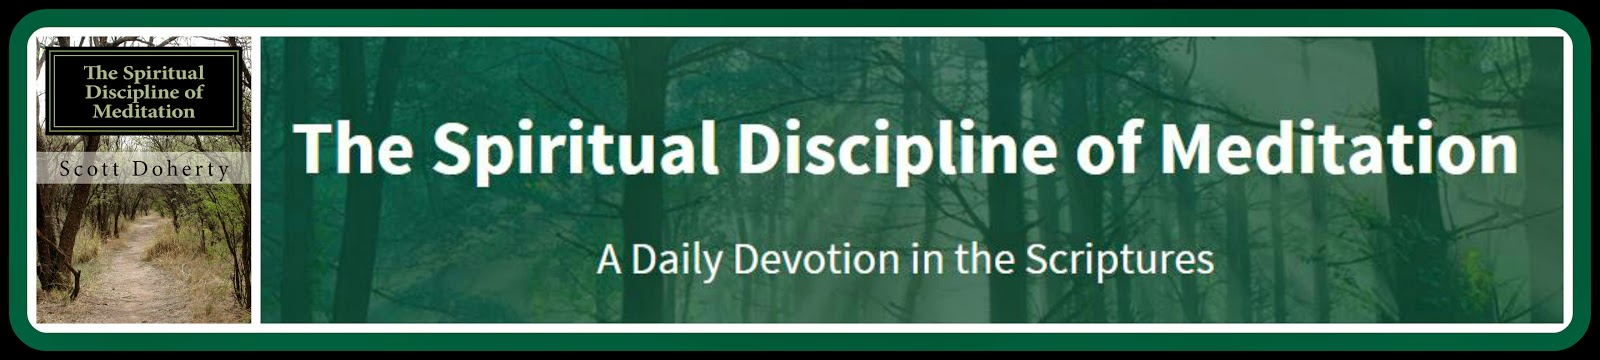 http://www.amazon.com/Spiritual-Discipline-Meditation-Devotion-Scriptures-ebook/dp/B00NF5F3ZY/ref=tmm_kin_swatch_0?_encoding=UTF8&sr=8-1&qid=1414382570